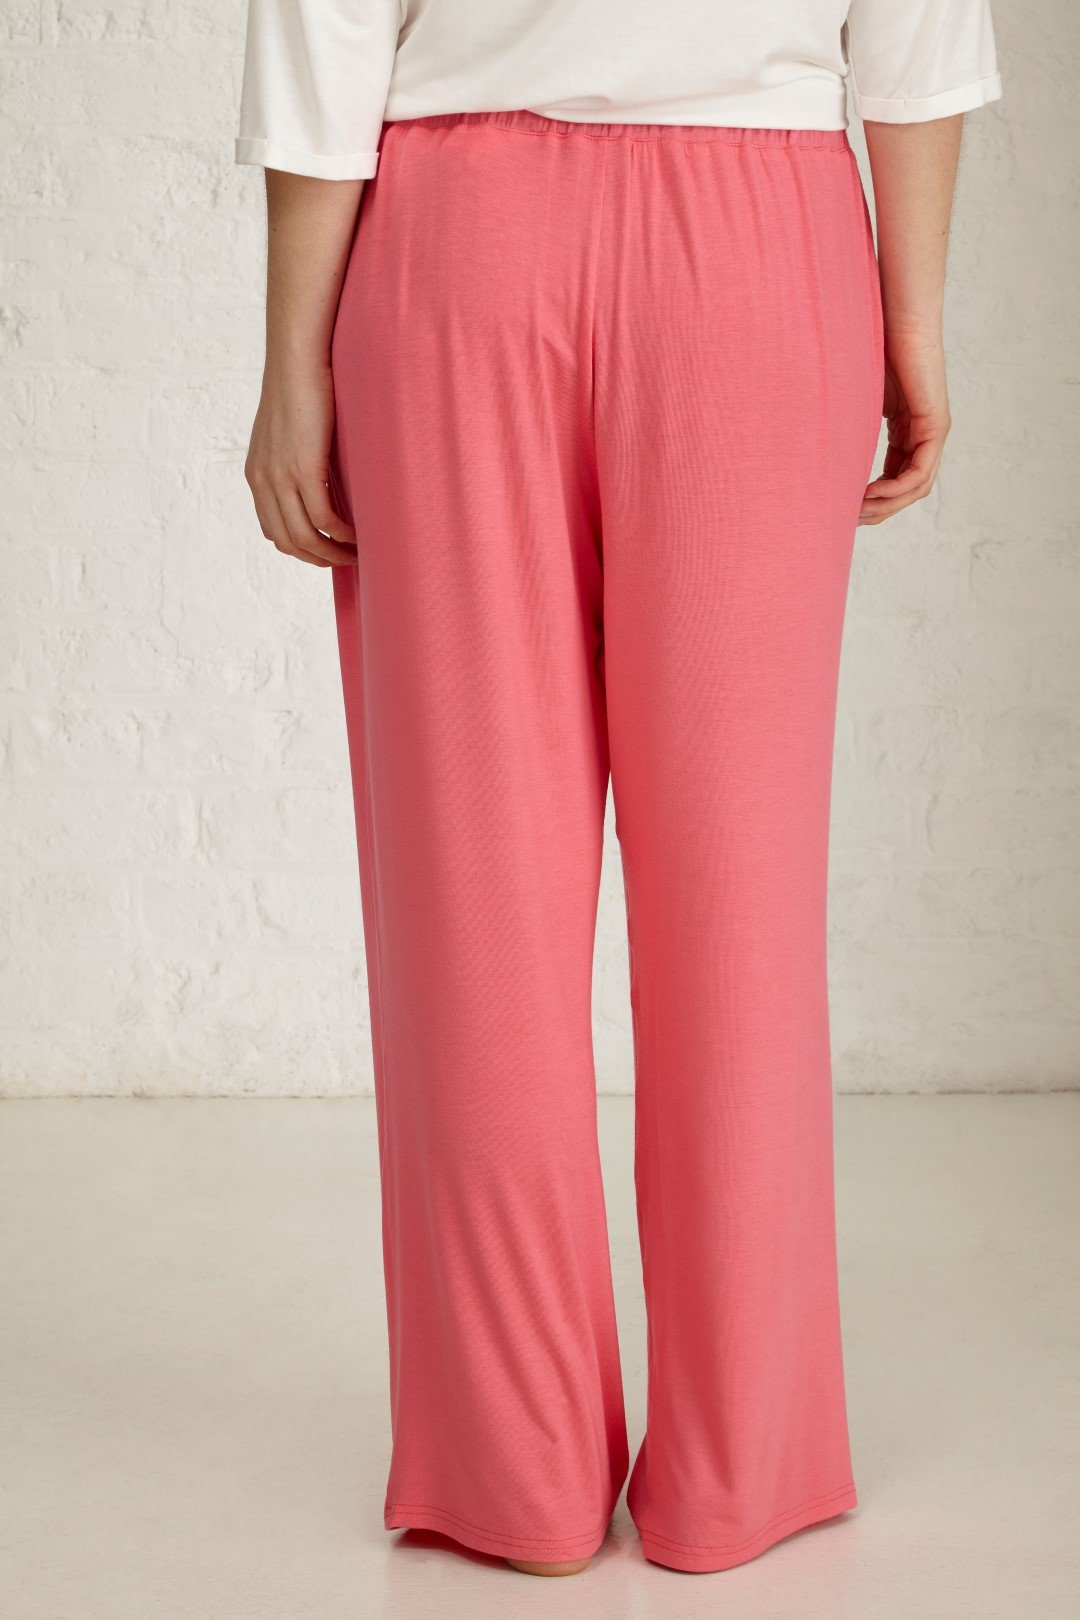 pink jersey trousers